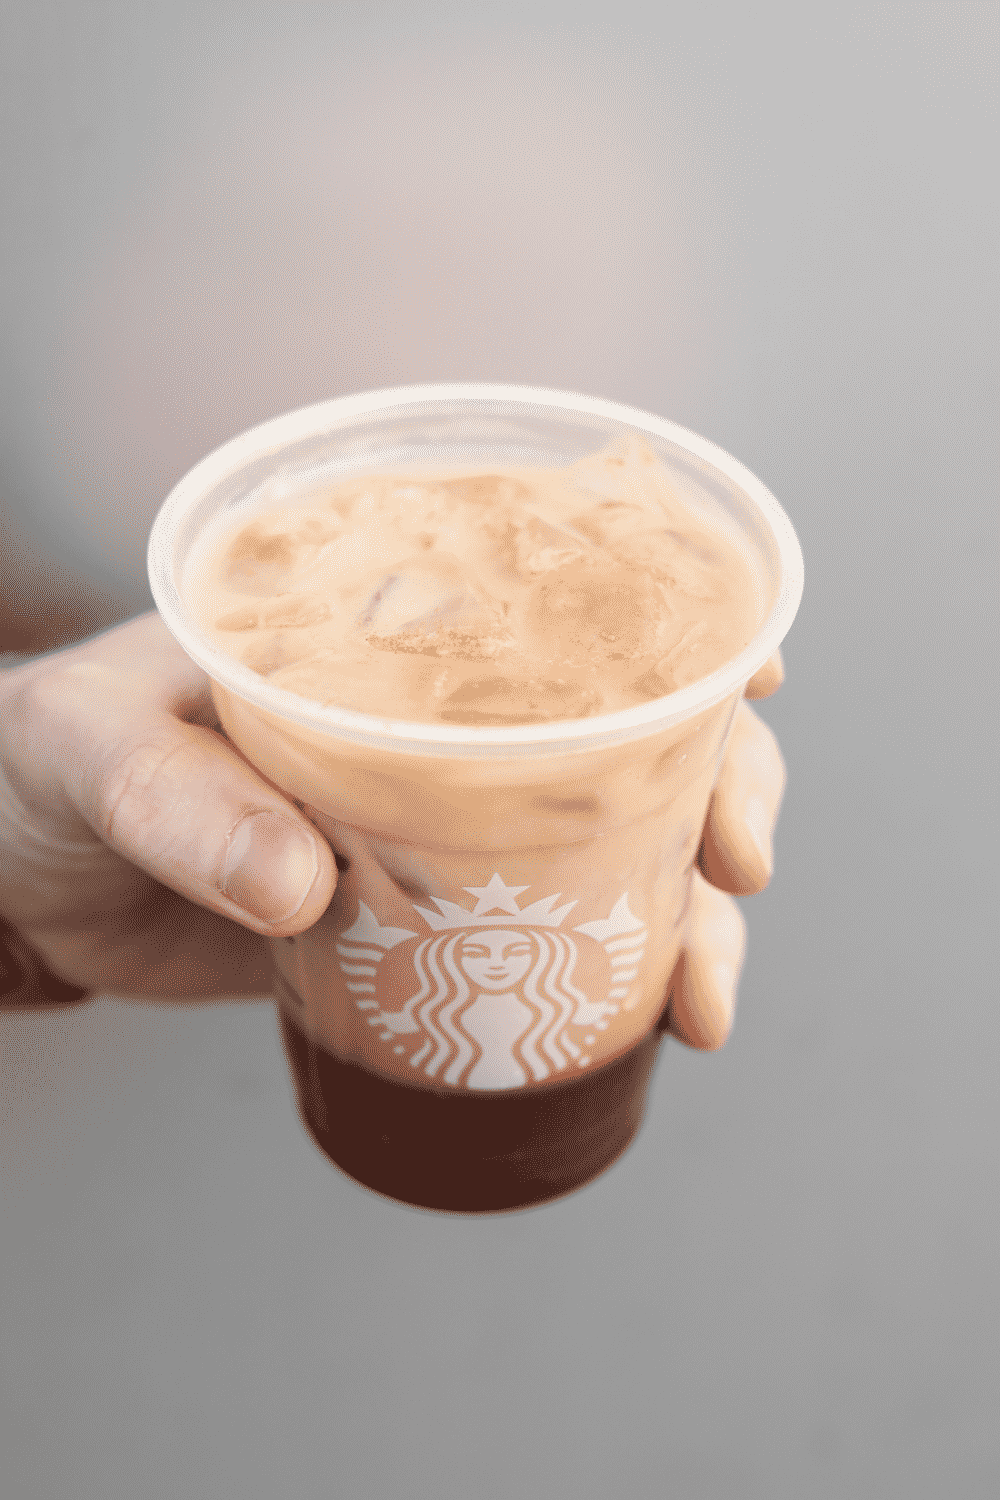 A hand holding a cup of Starbucks chocolate almond milk espresso.